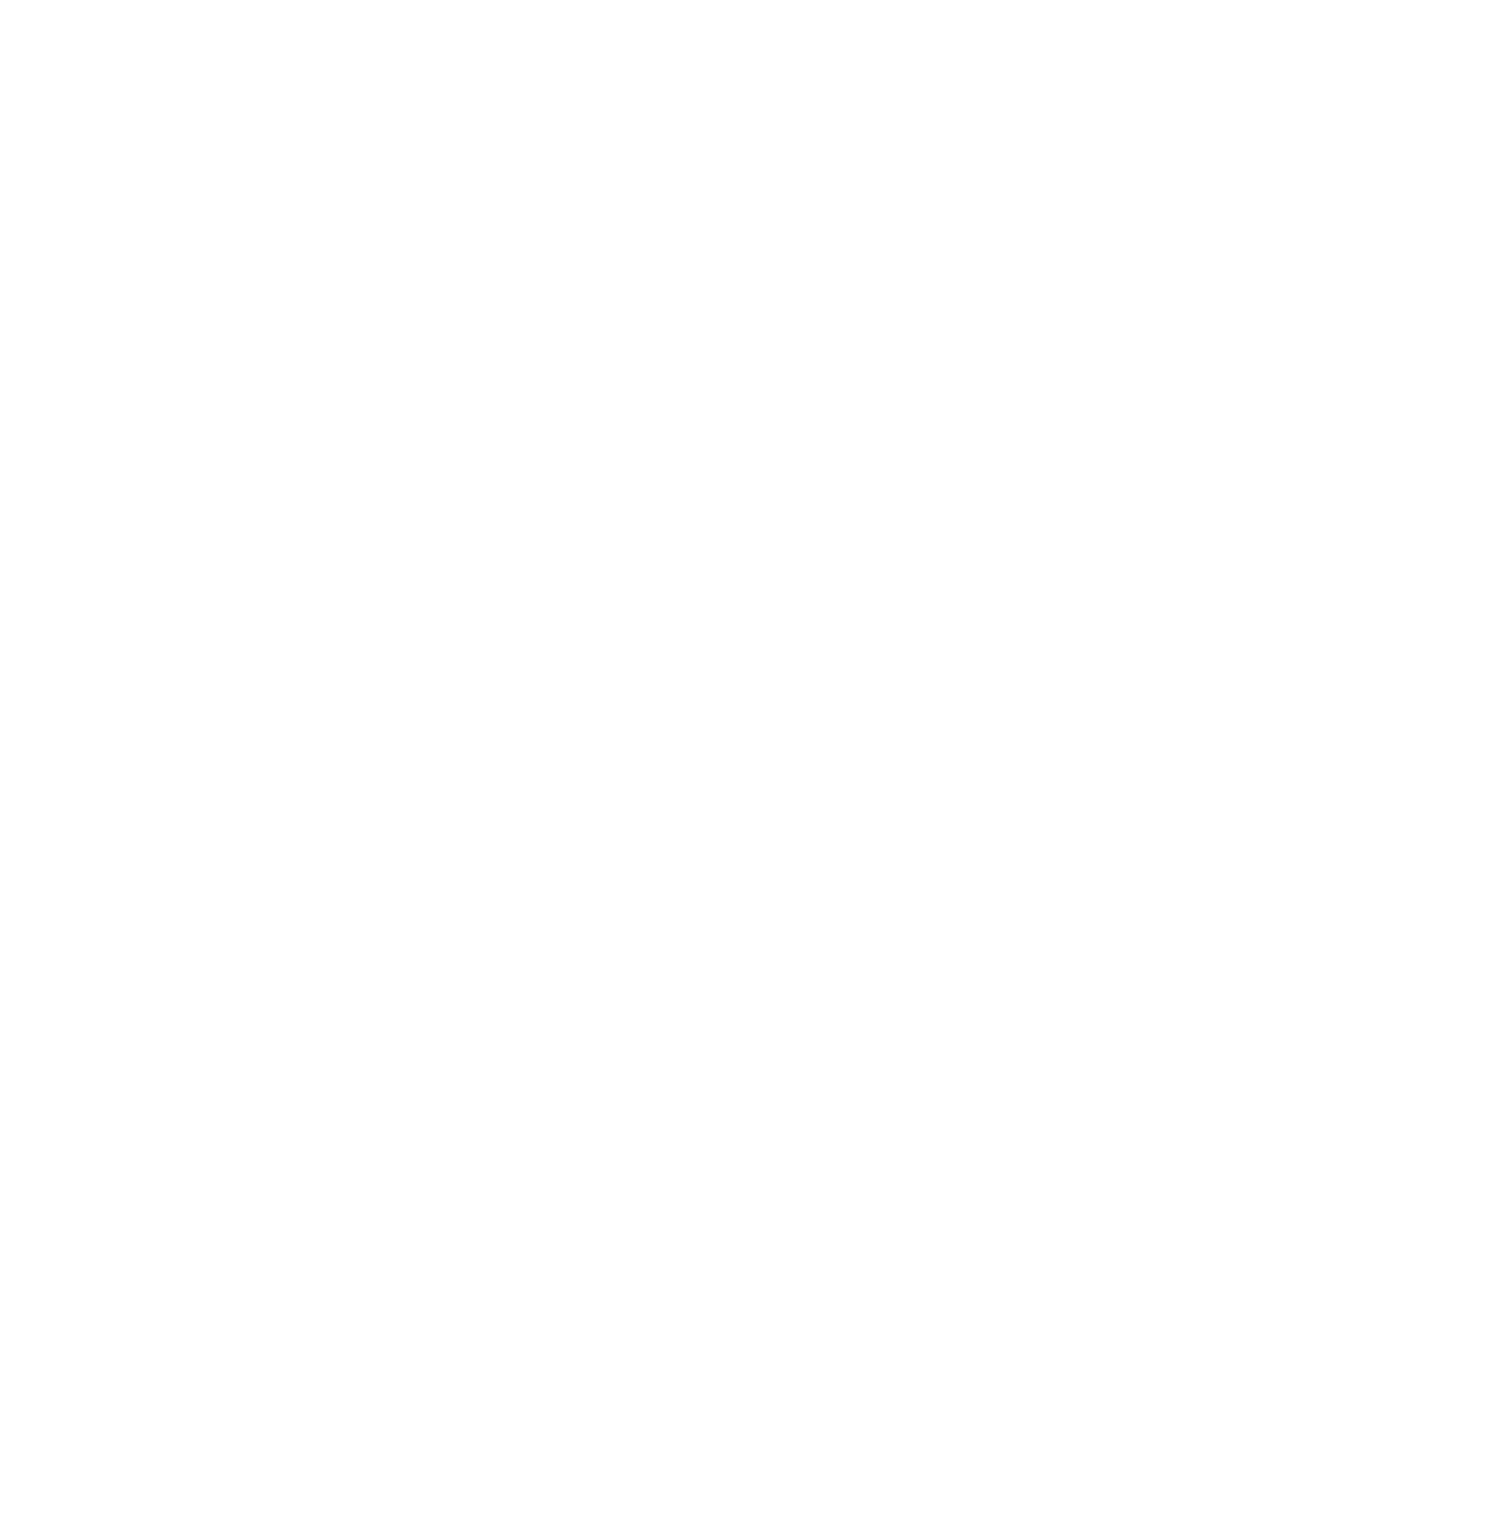 Garden Grove Community Foundation